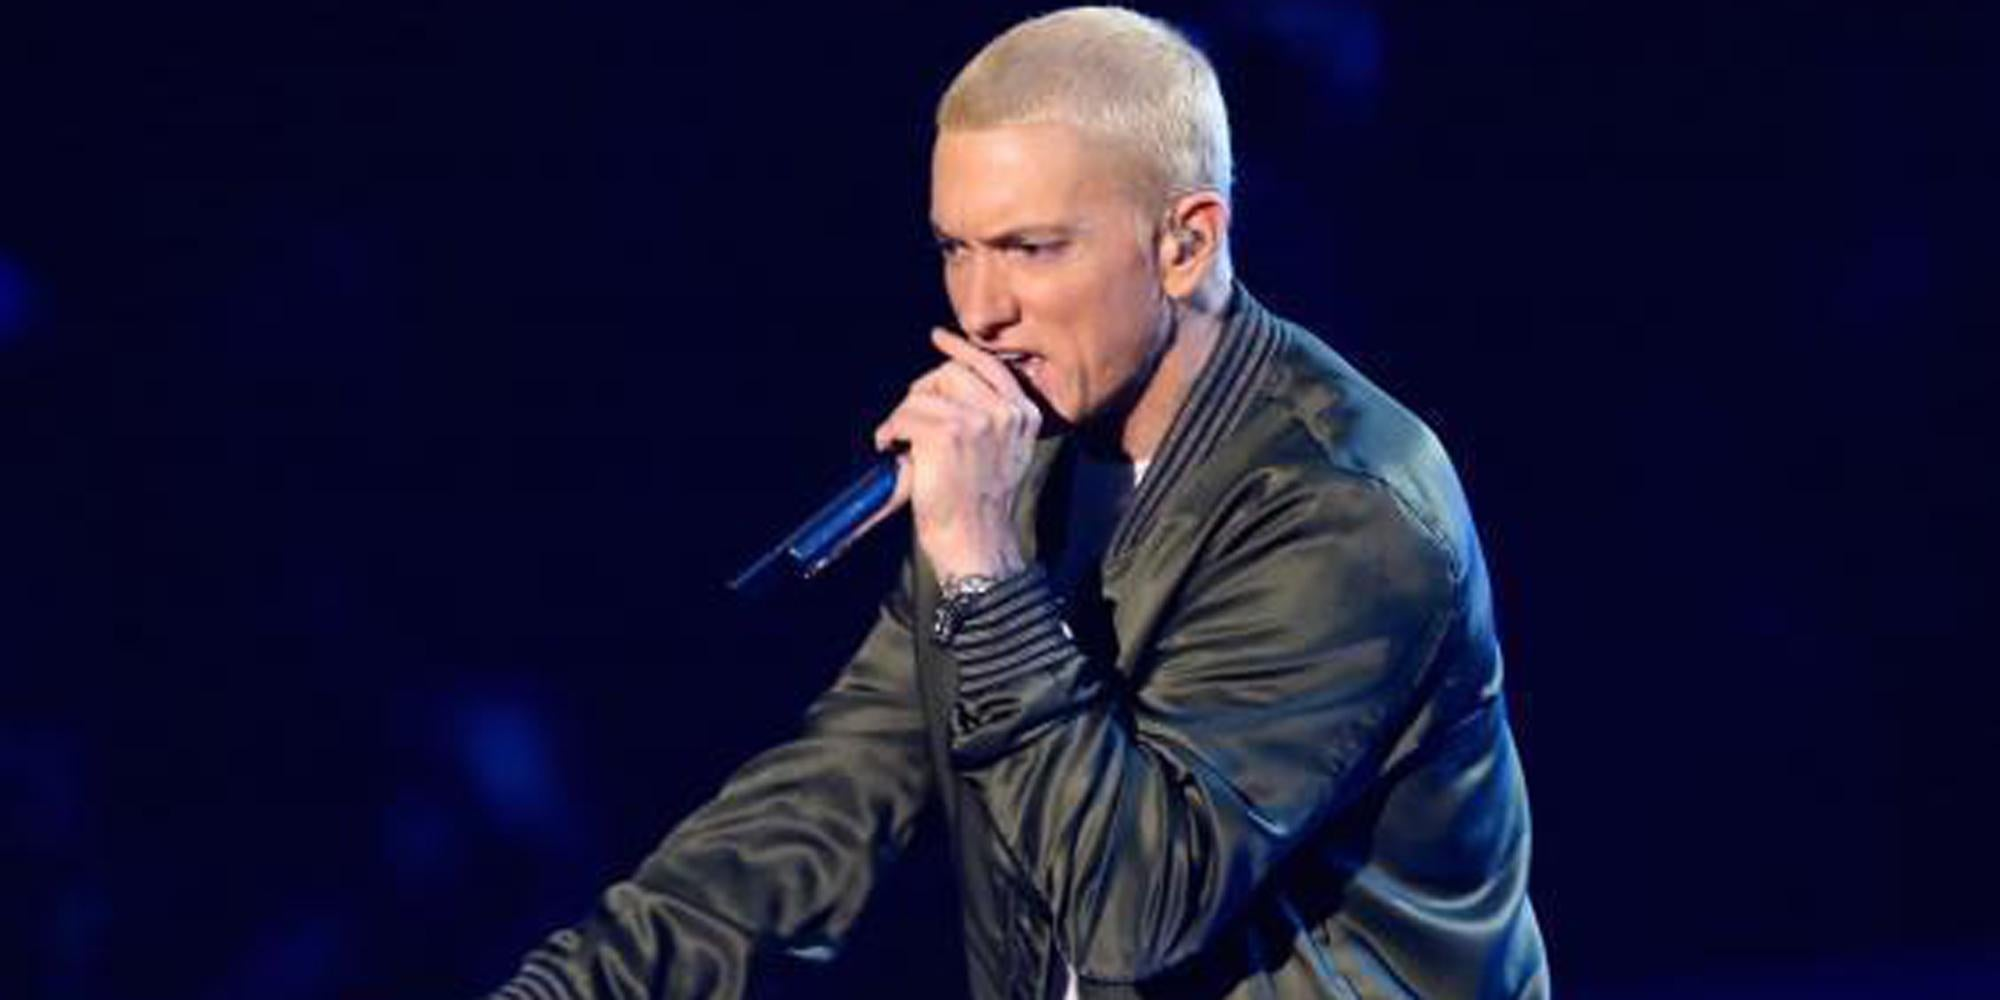 Eminem proves there are lots of words that rhyme with orange